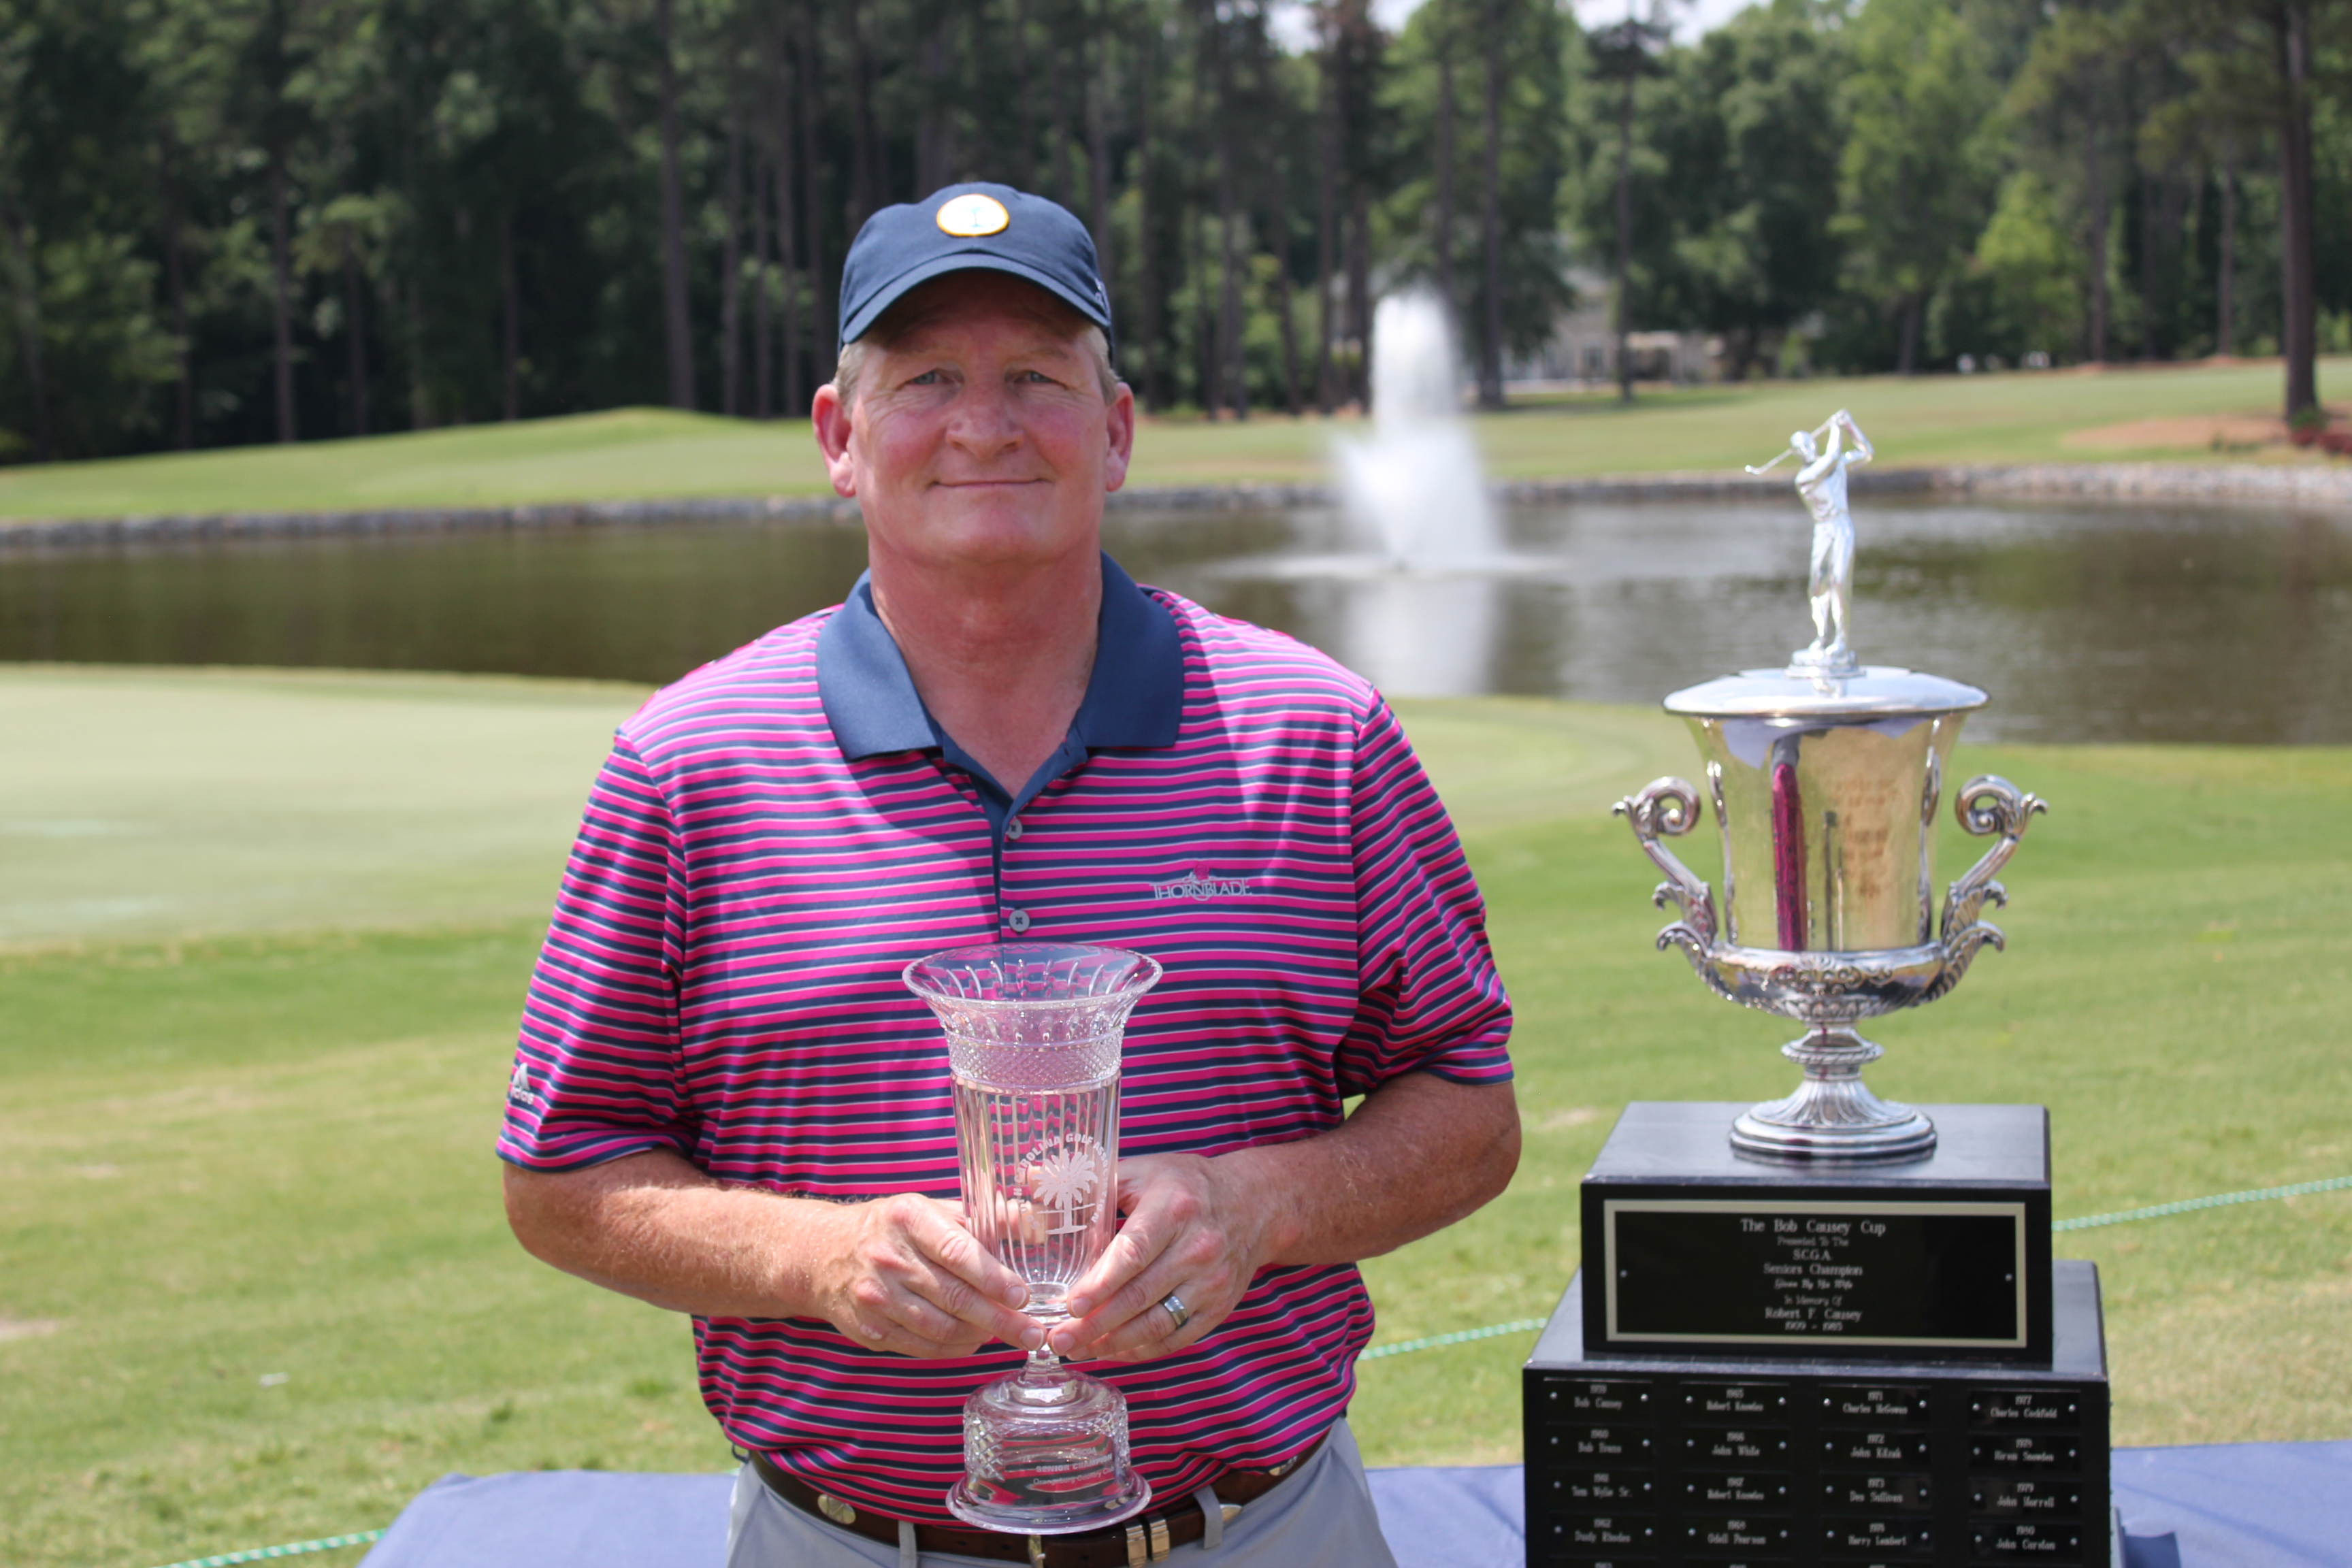 Pure perfection Charleston senior amateur golf tournament results she was